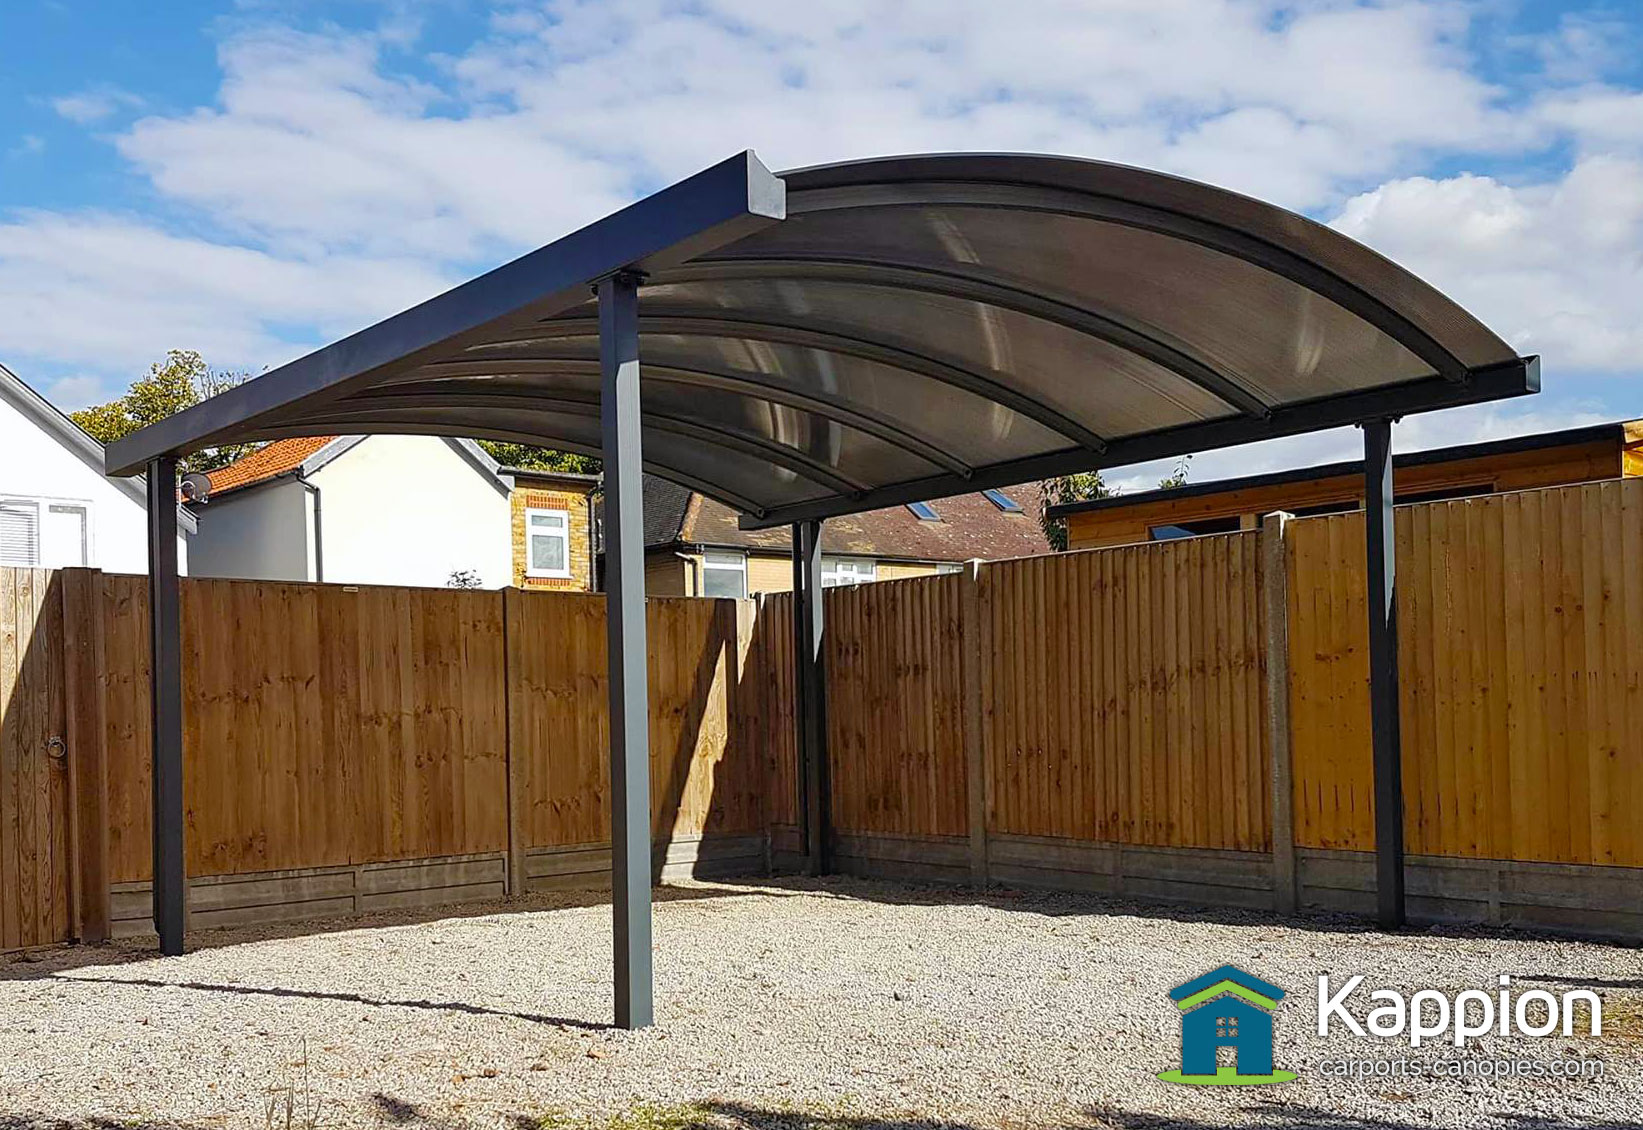 Carport installed in whitstable kappion carports canopies for Garages and carports